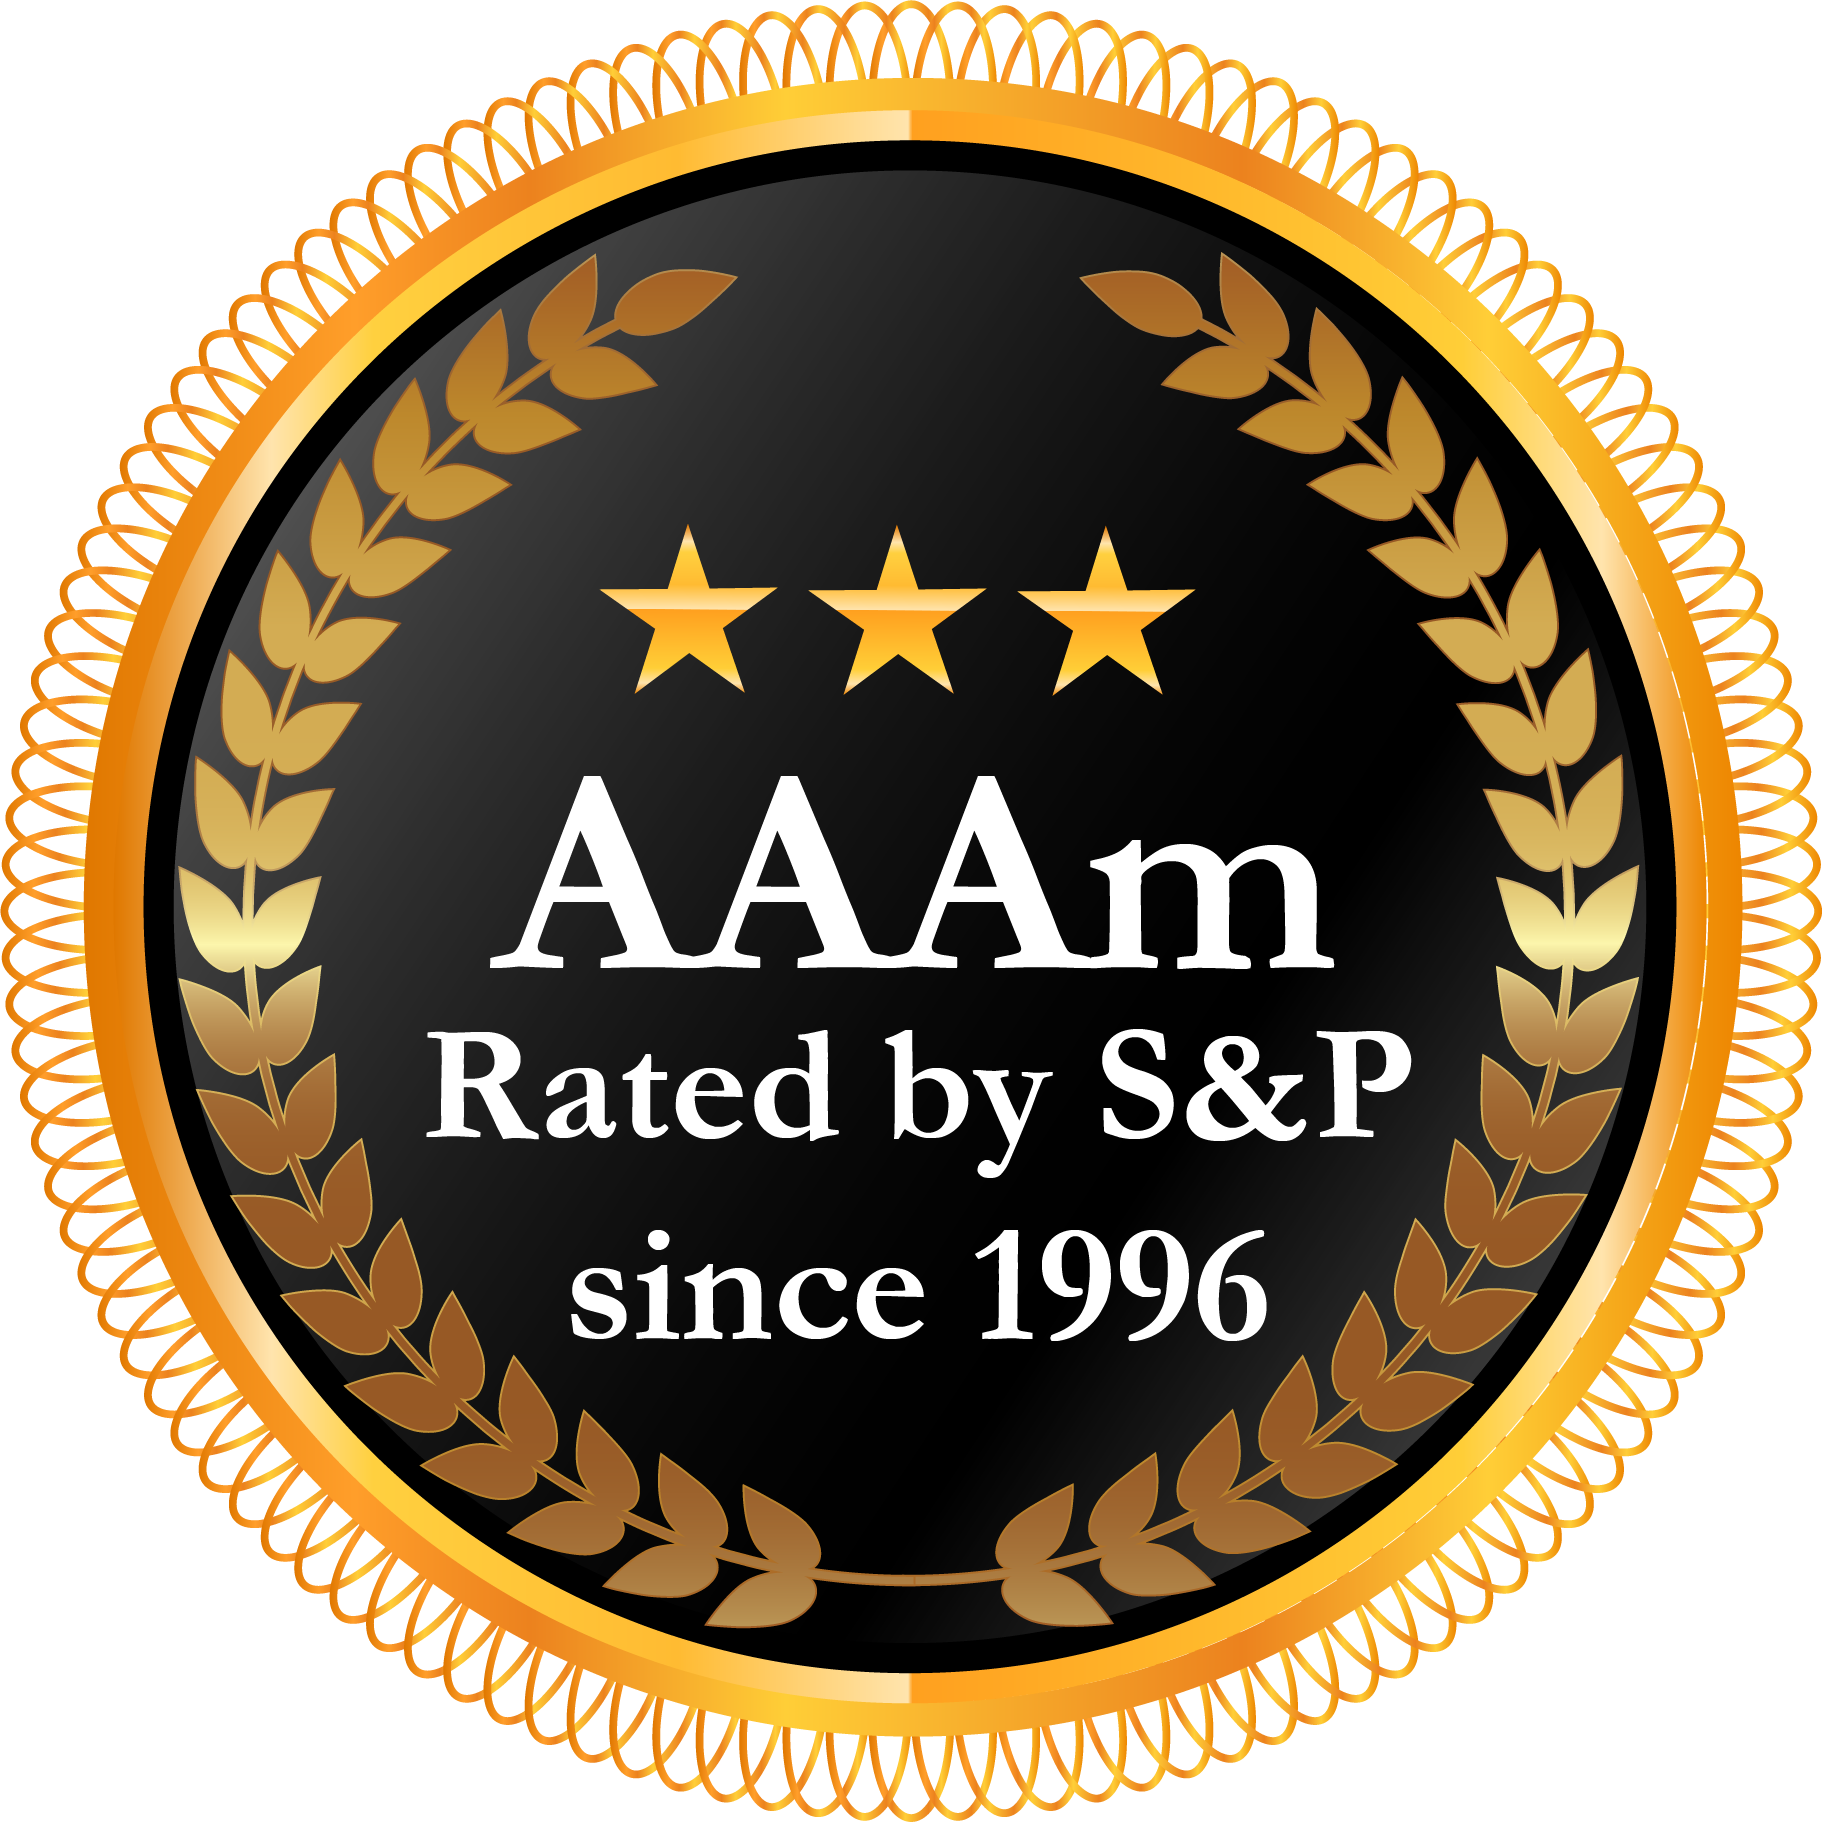 S&P AAAm Rating (since 1996)